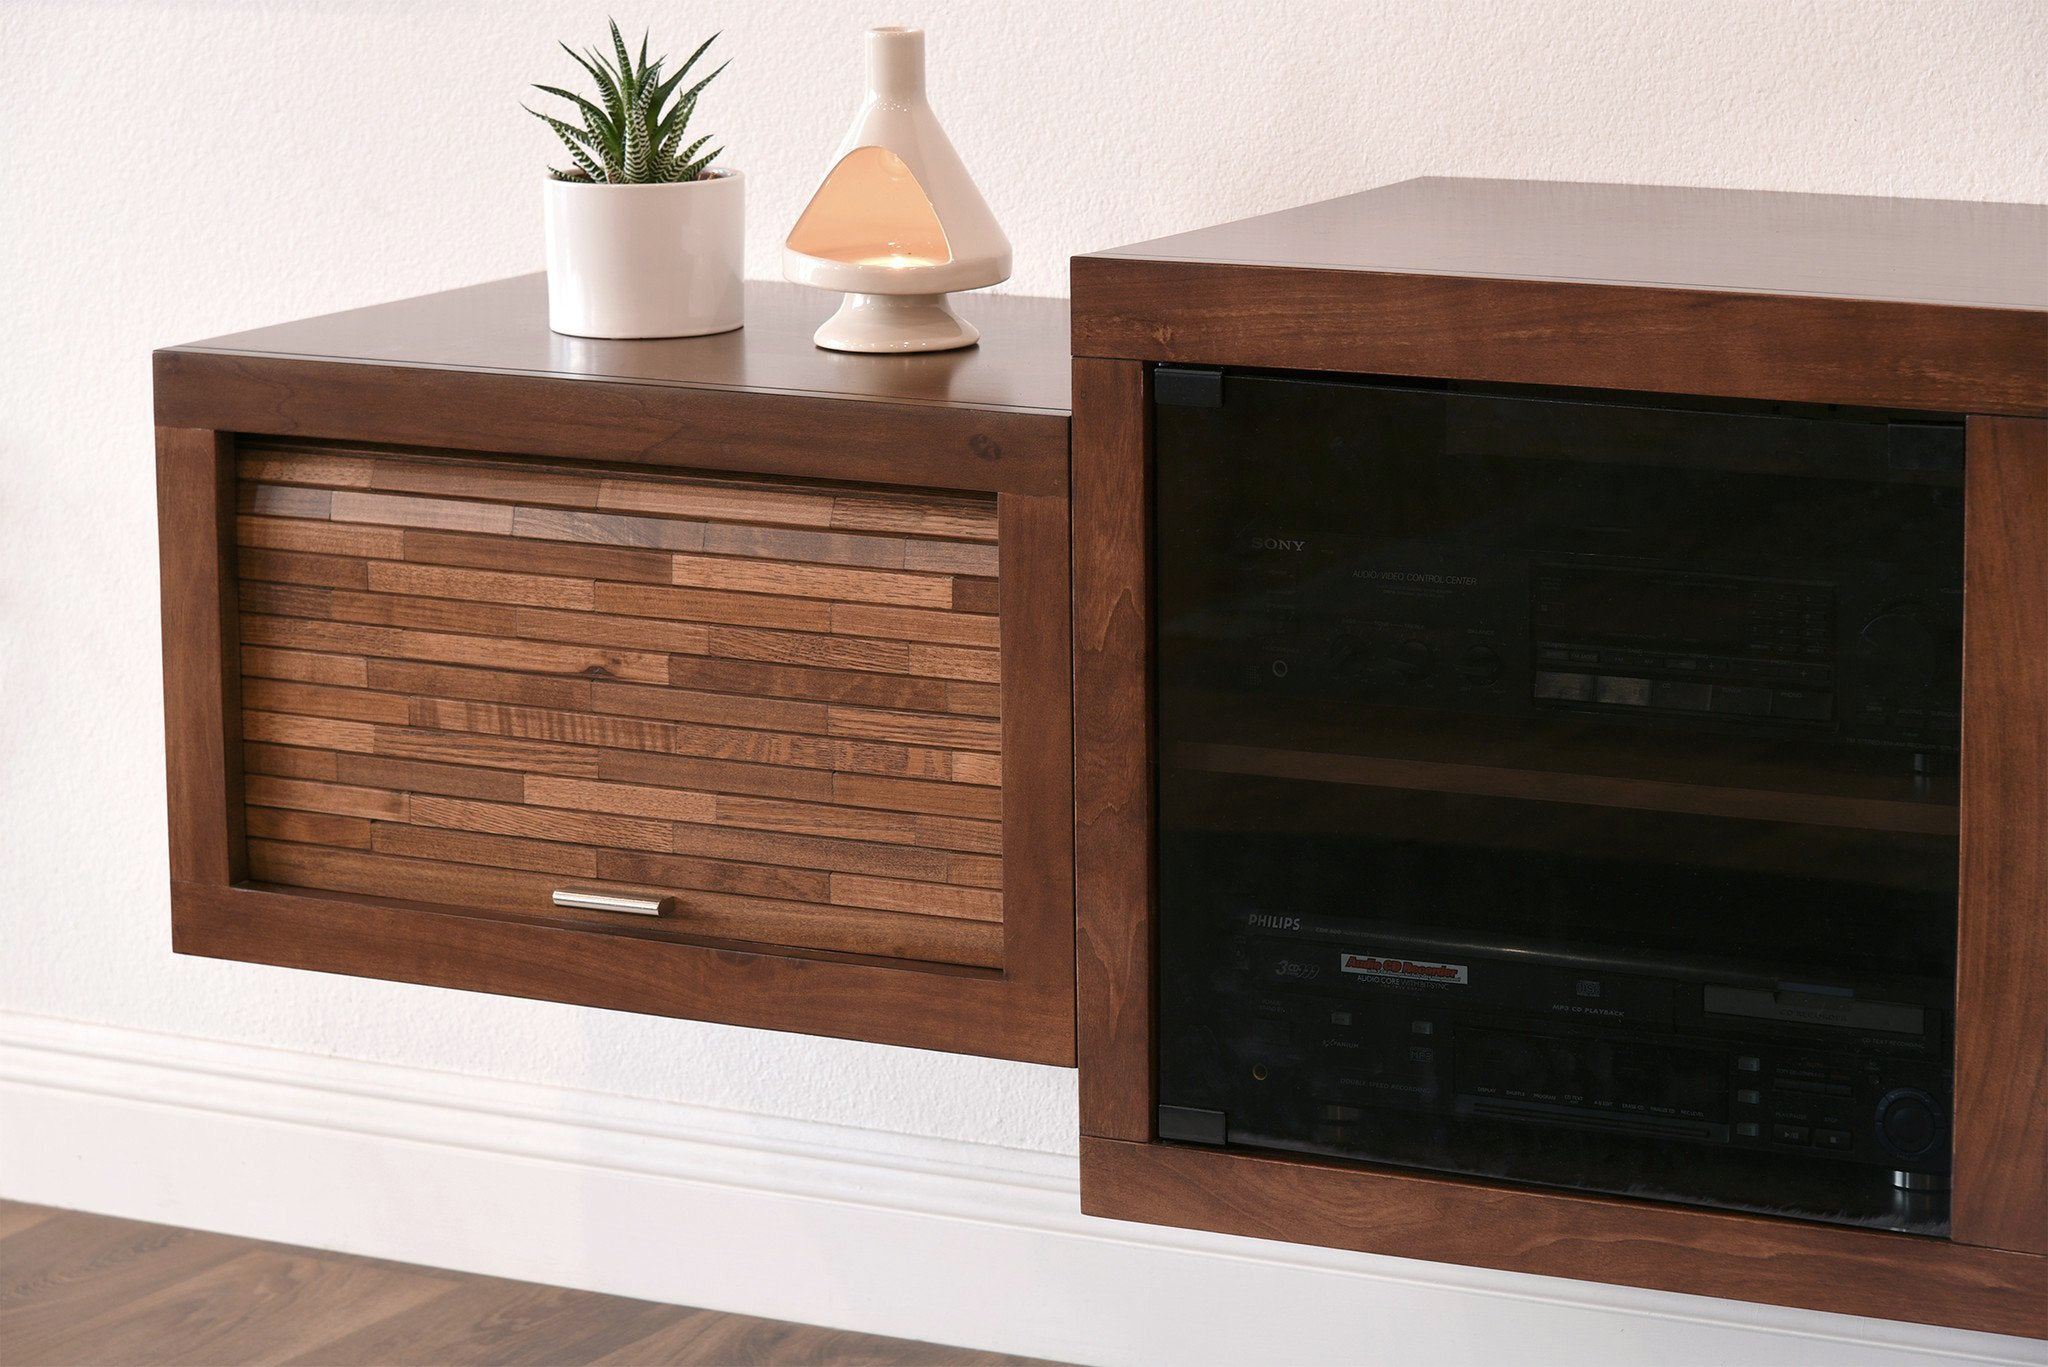 pretty fetching wooden stand tv fireplace storage mantle corner in with stands electric white under lcd